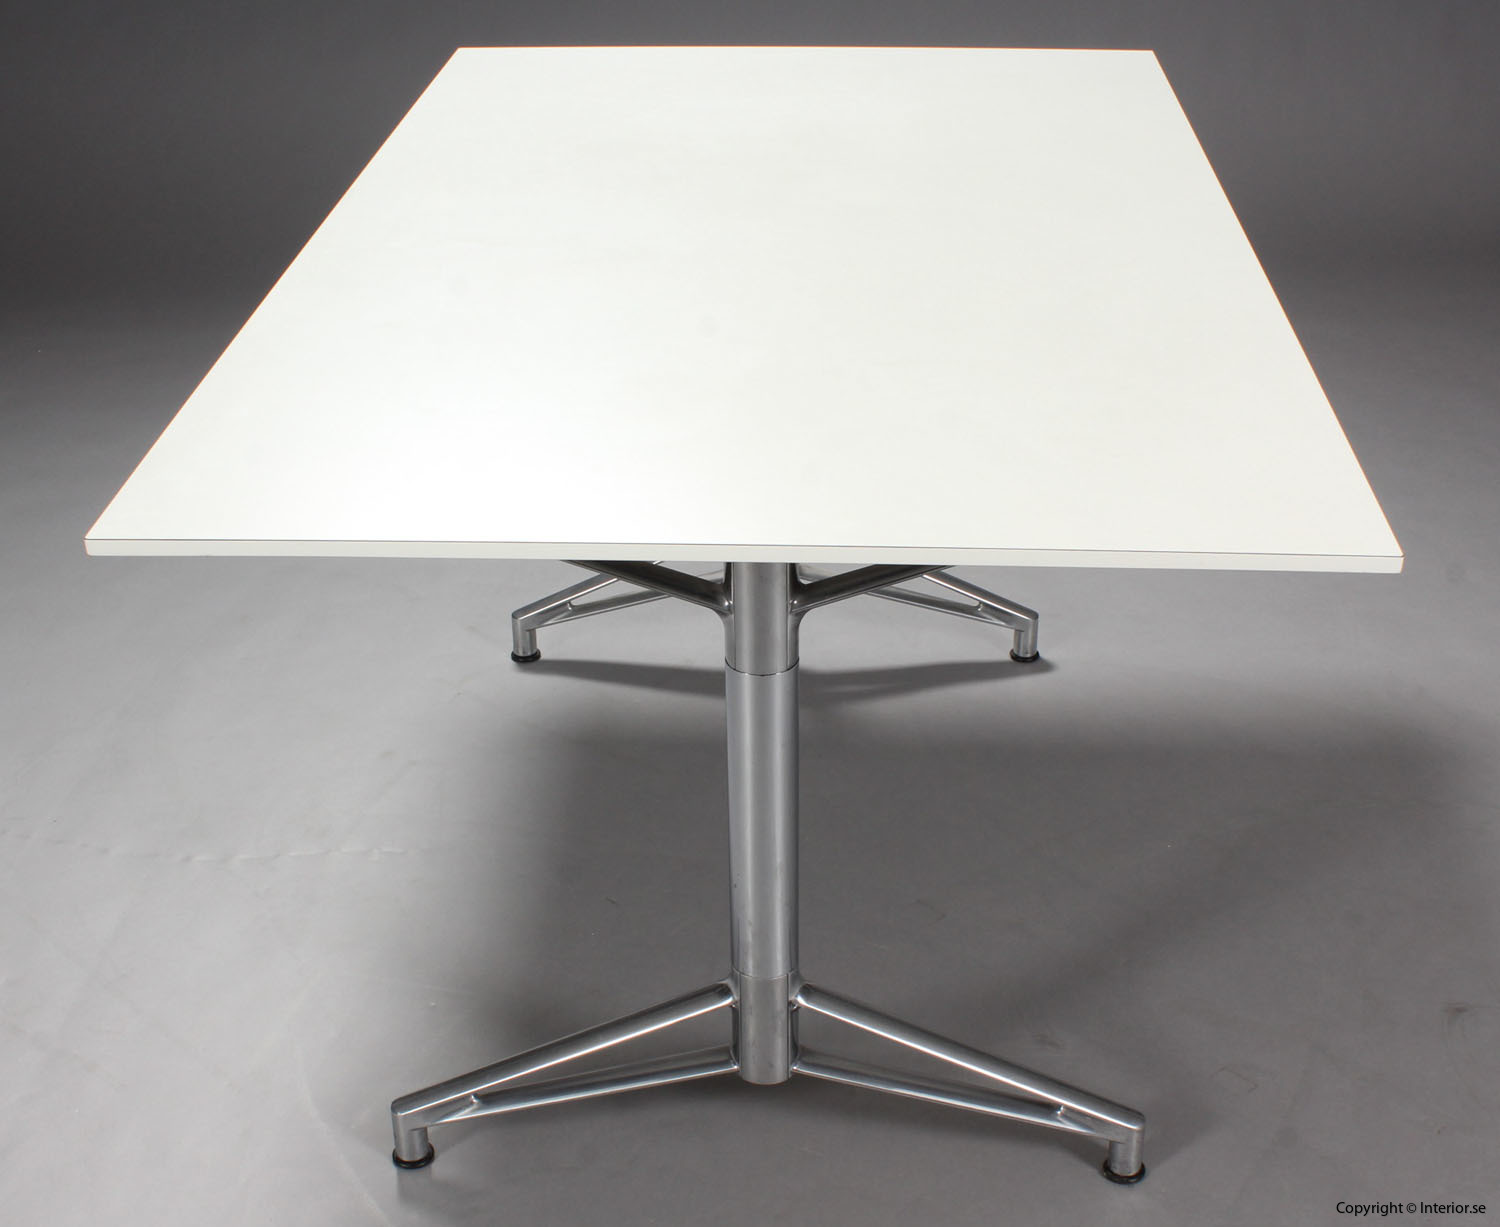 Konferensbord, Kusch & Co One Desk - 200 x 90 cm konferenztisch conference table 5